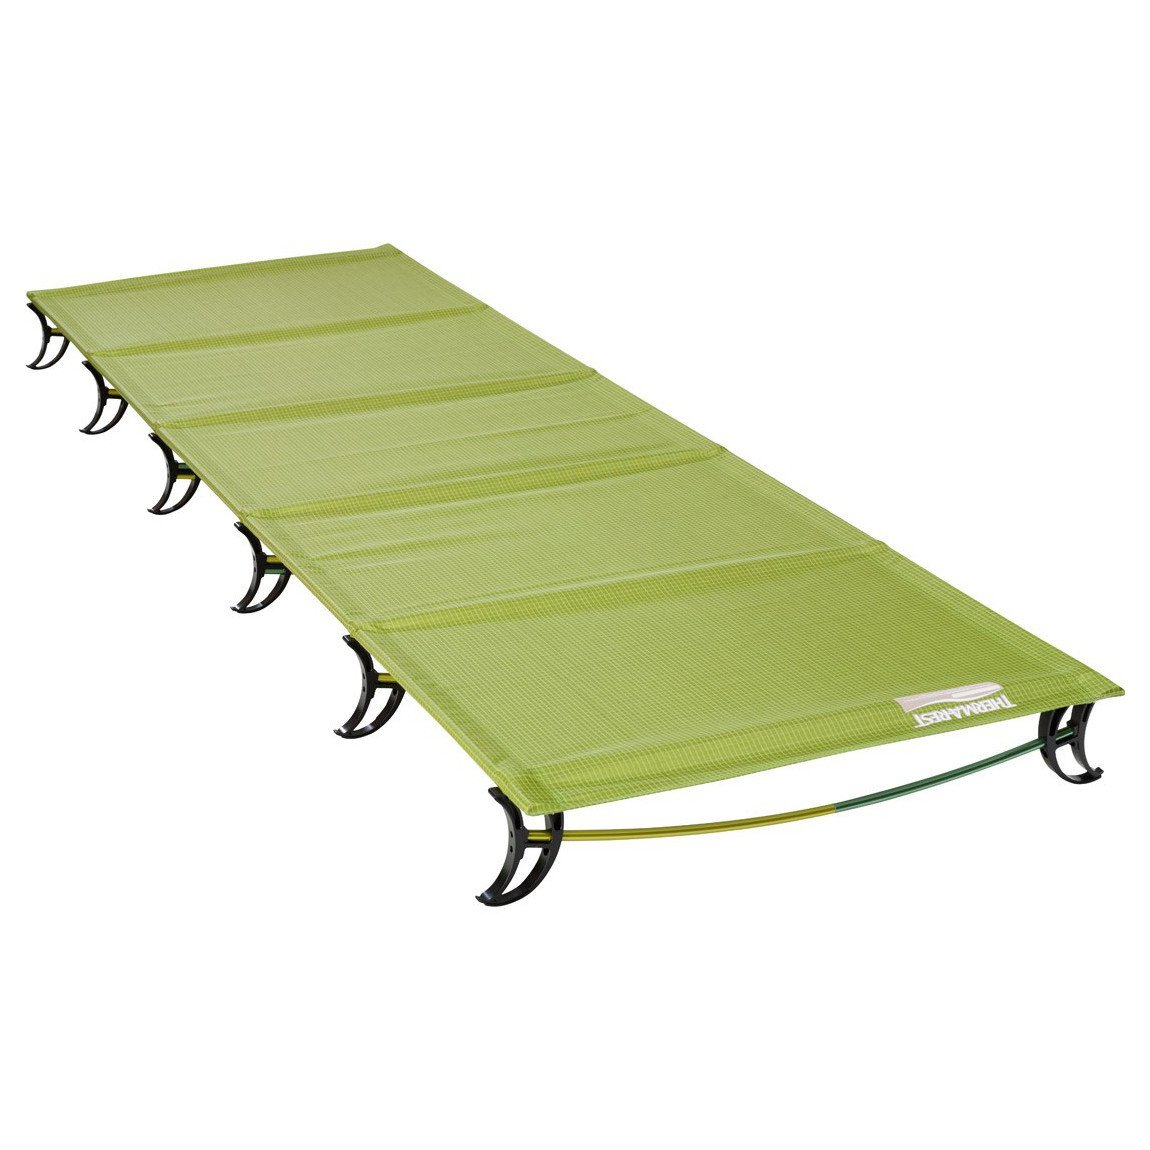 Thermarest Ultralite camping Cot shown set up, in green colour